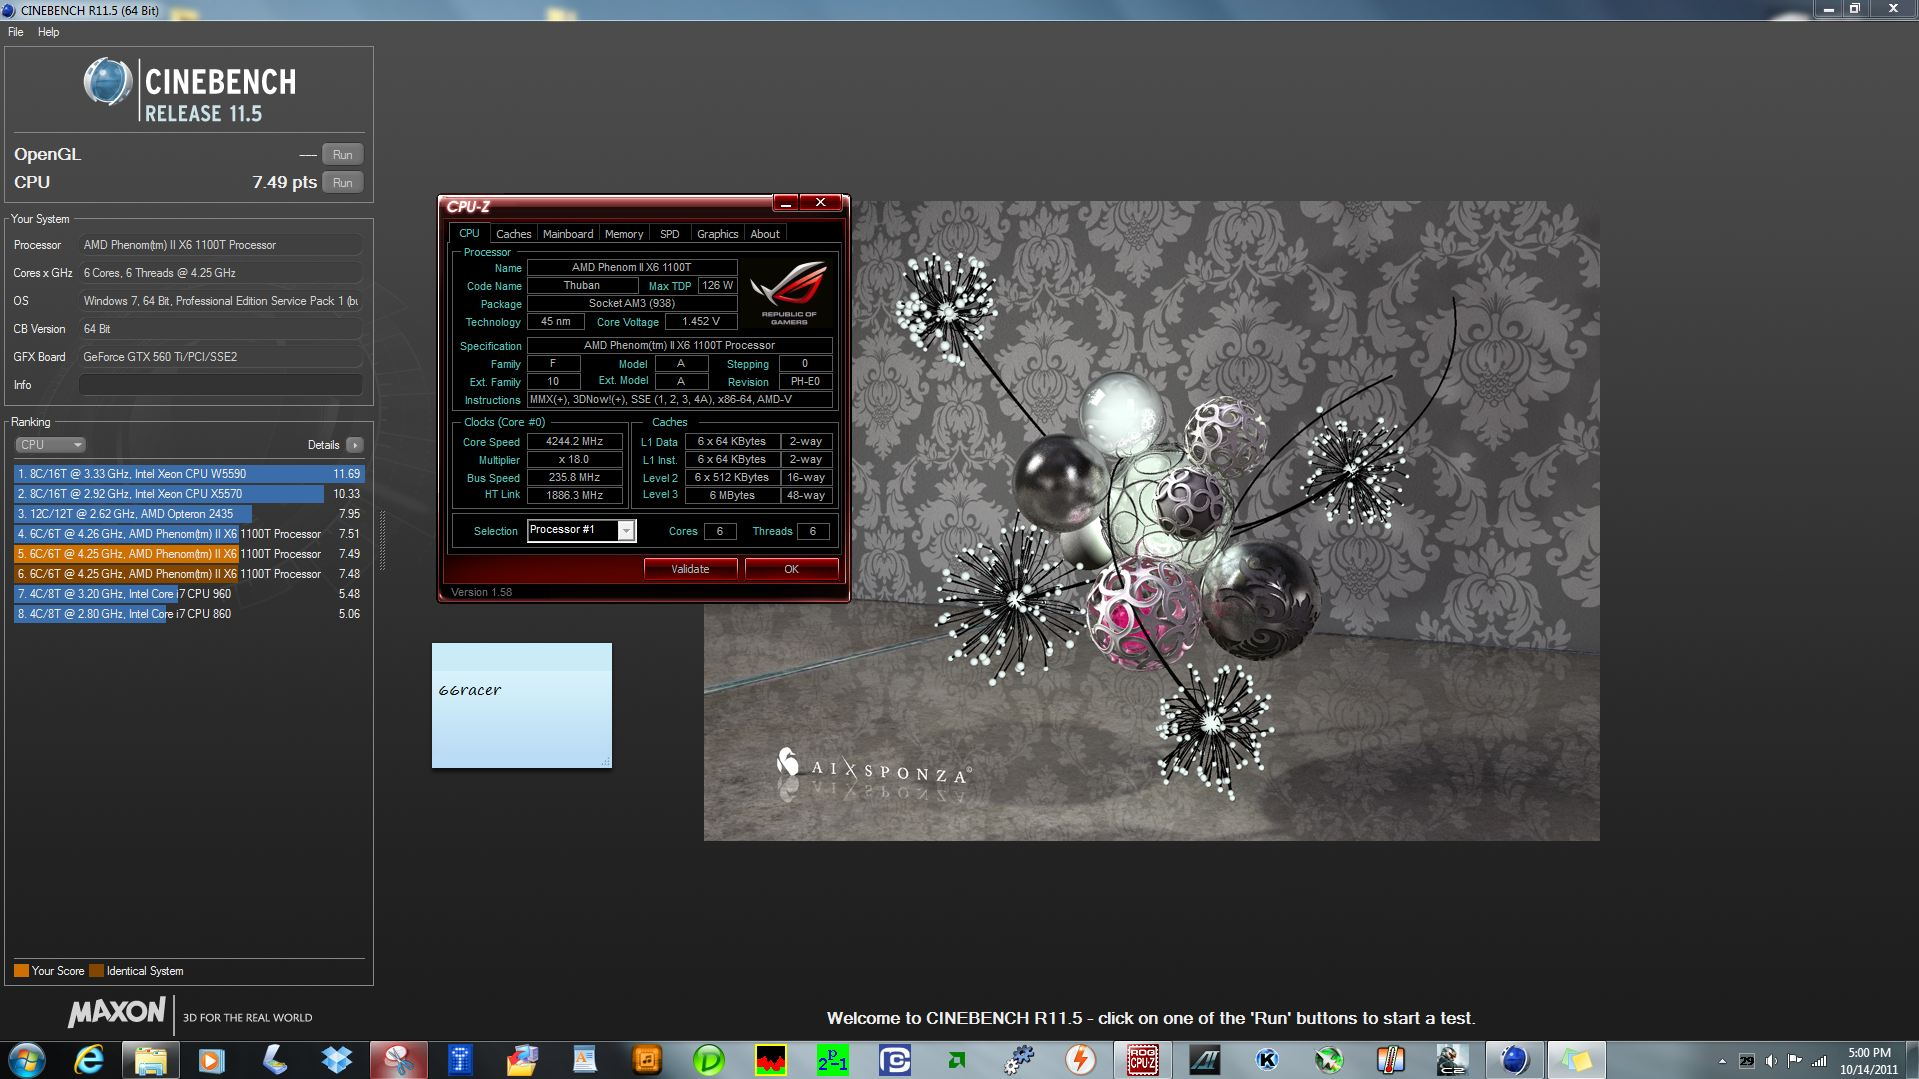 2011-10-14_cinebench11.5_7.49pts.JPG